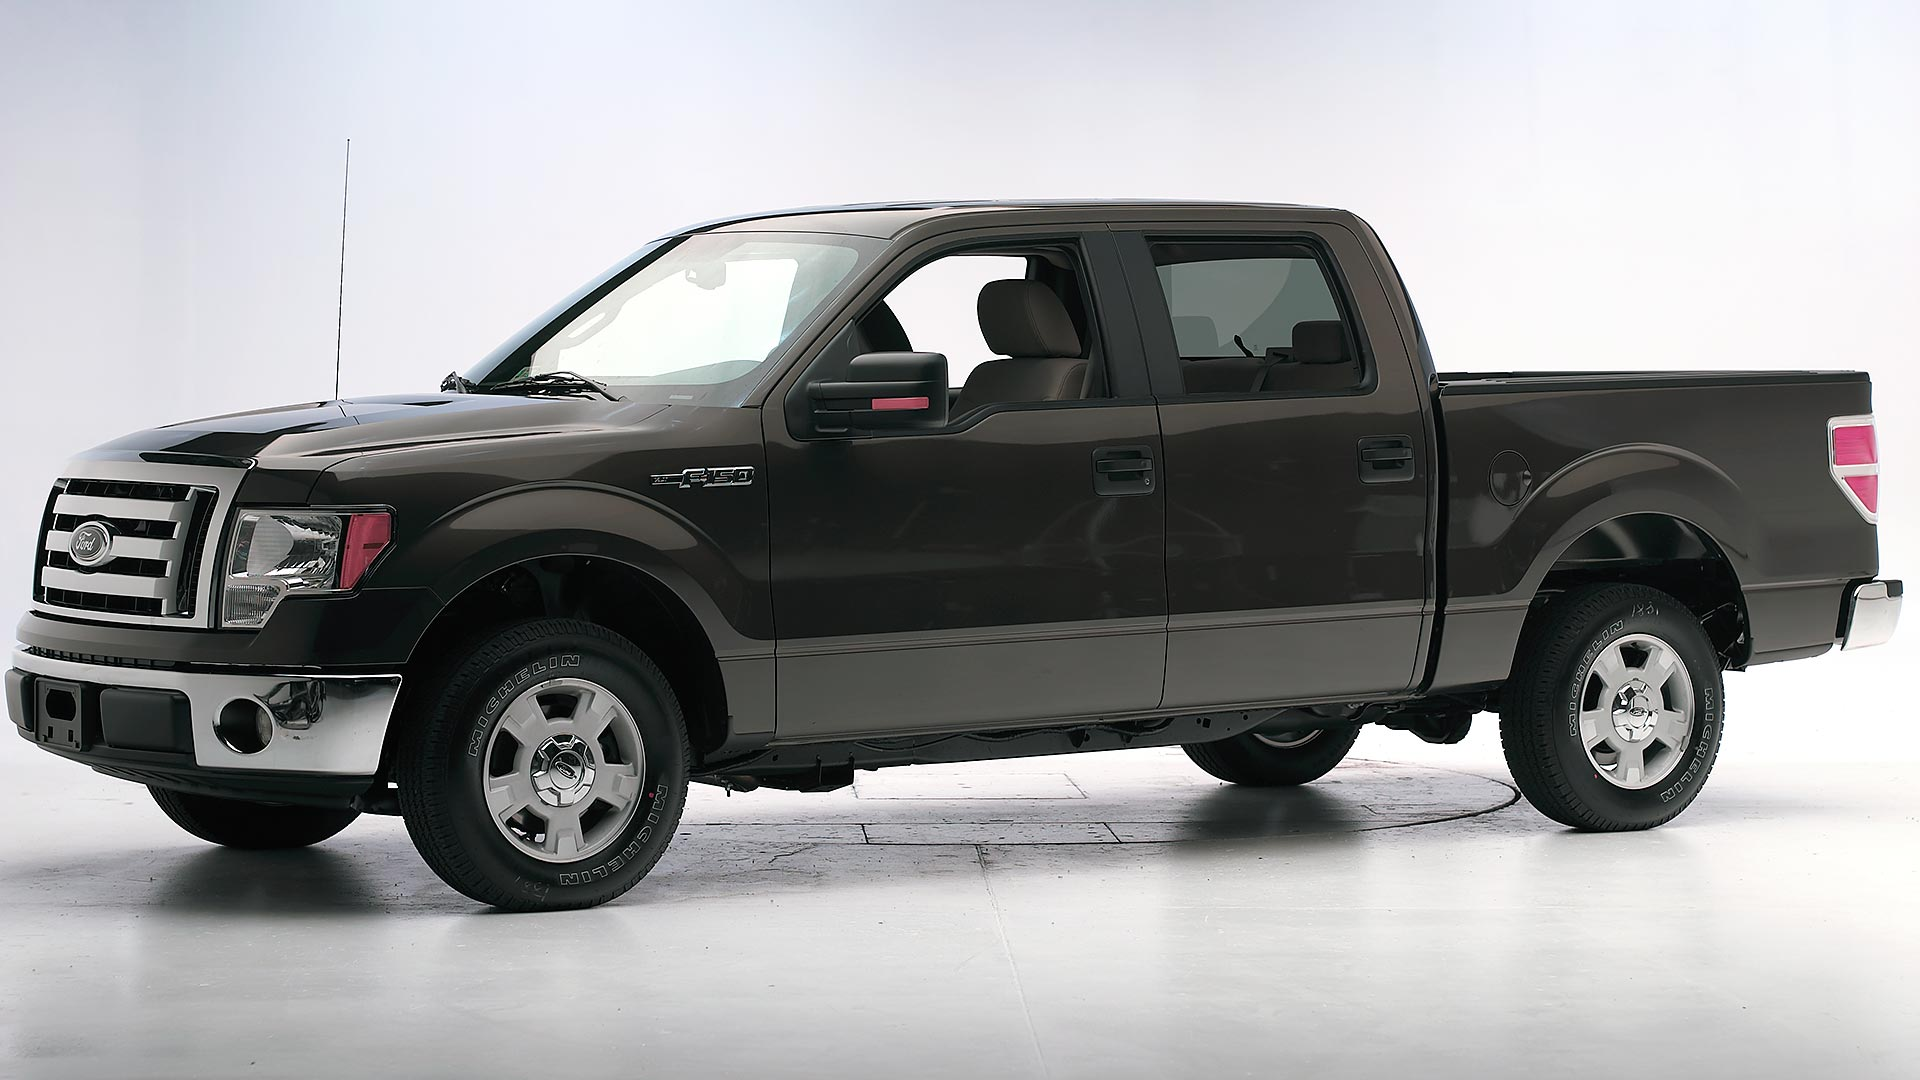 2009 Ford F-150 Crew cab pickup